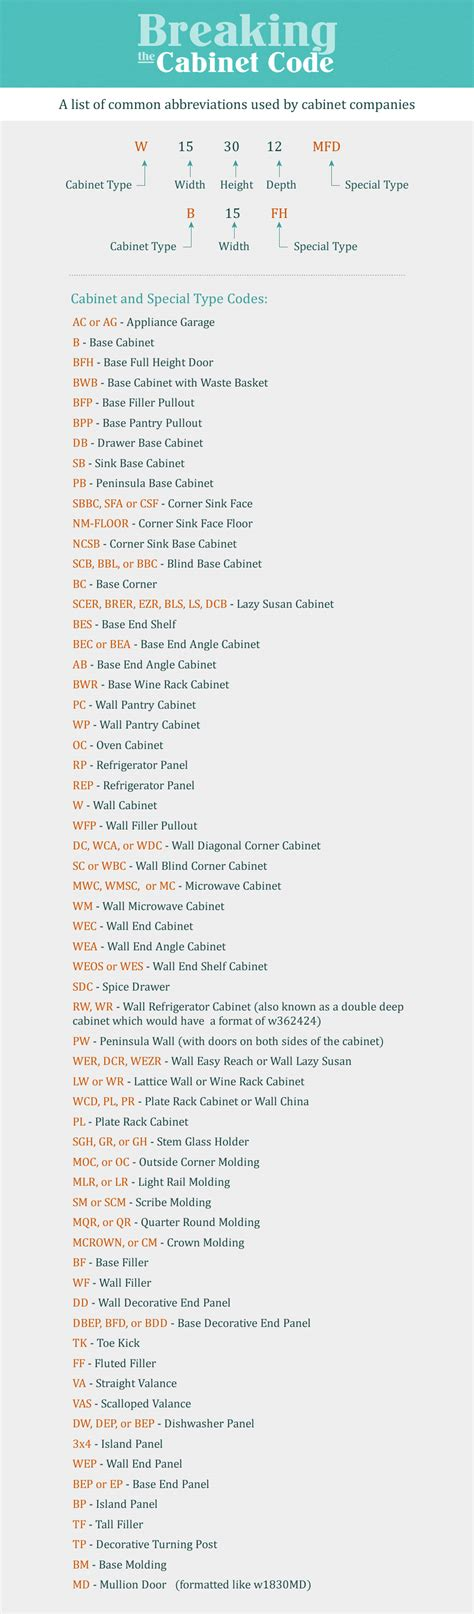 Kitchen Cabinet Codes | cracking the kitchen cabinet code kitchen cabinet code